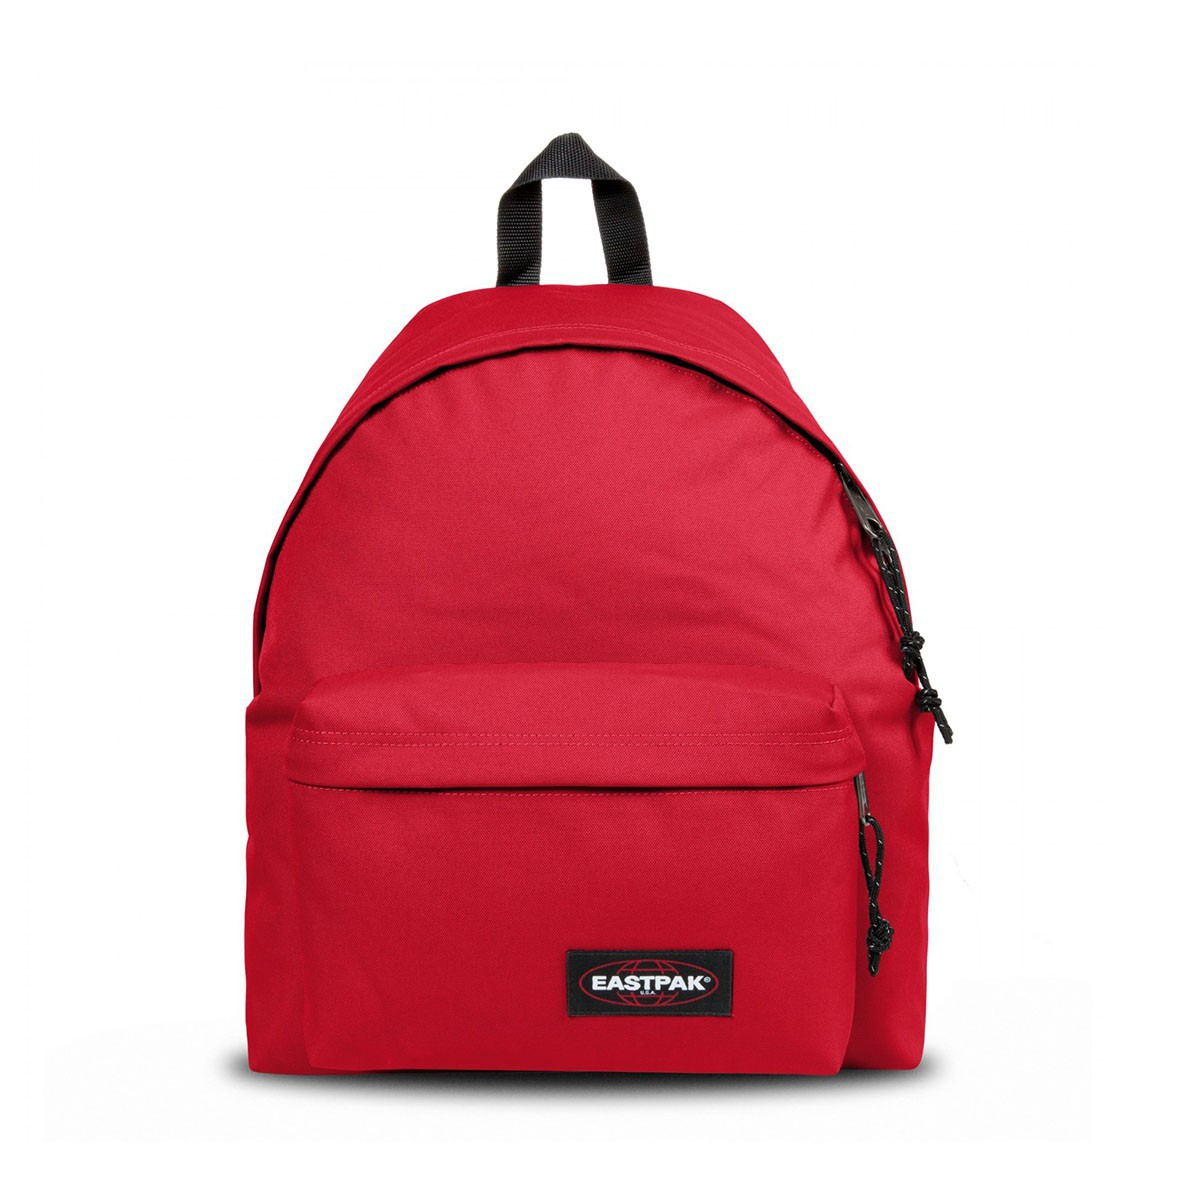 Eastpak Backpack Padded Pak'r Chuppachop Red